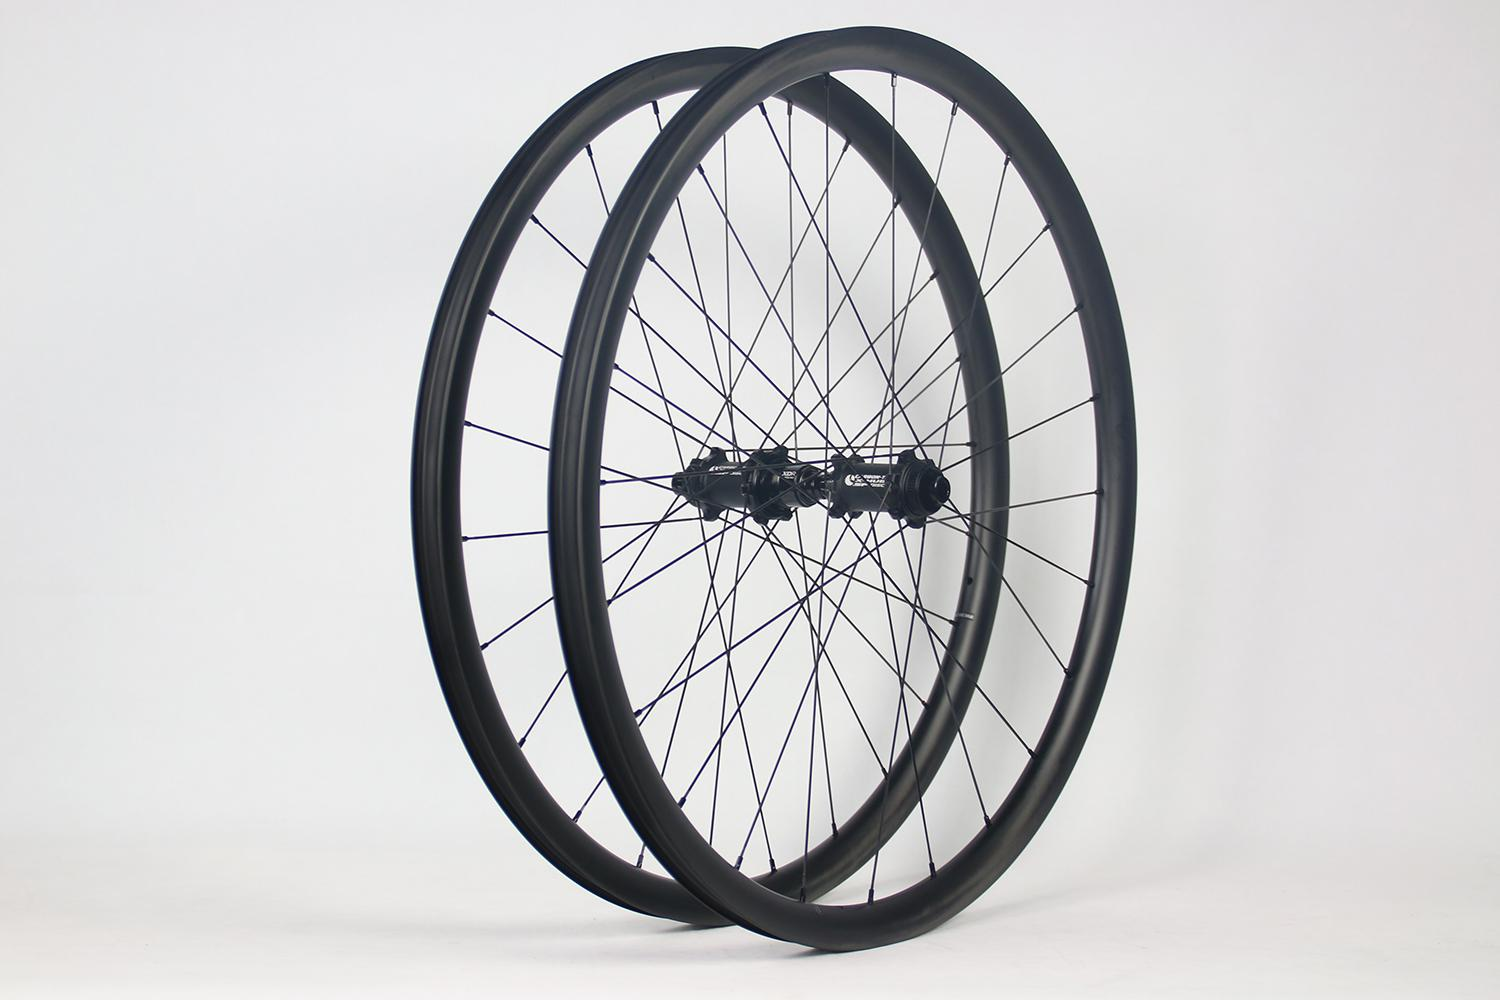 light-bicycle-ar28-rg922-700c-carbon-rims-laced-to-carbon-ti-x-hubs-road-disc